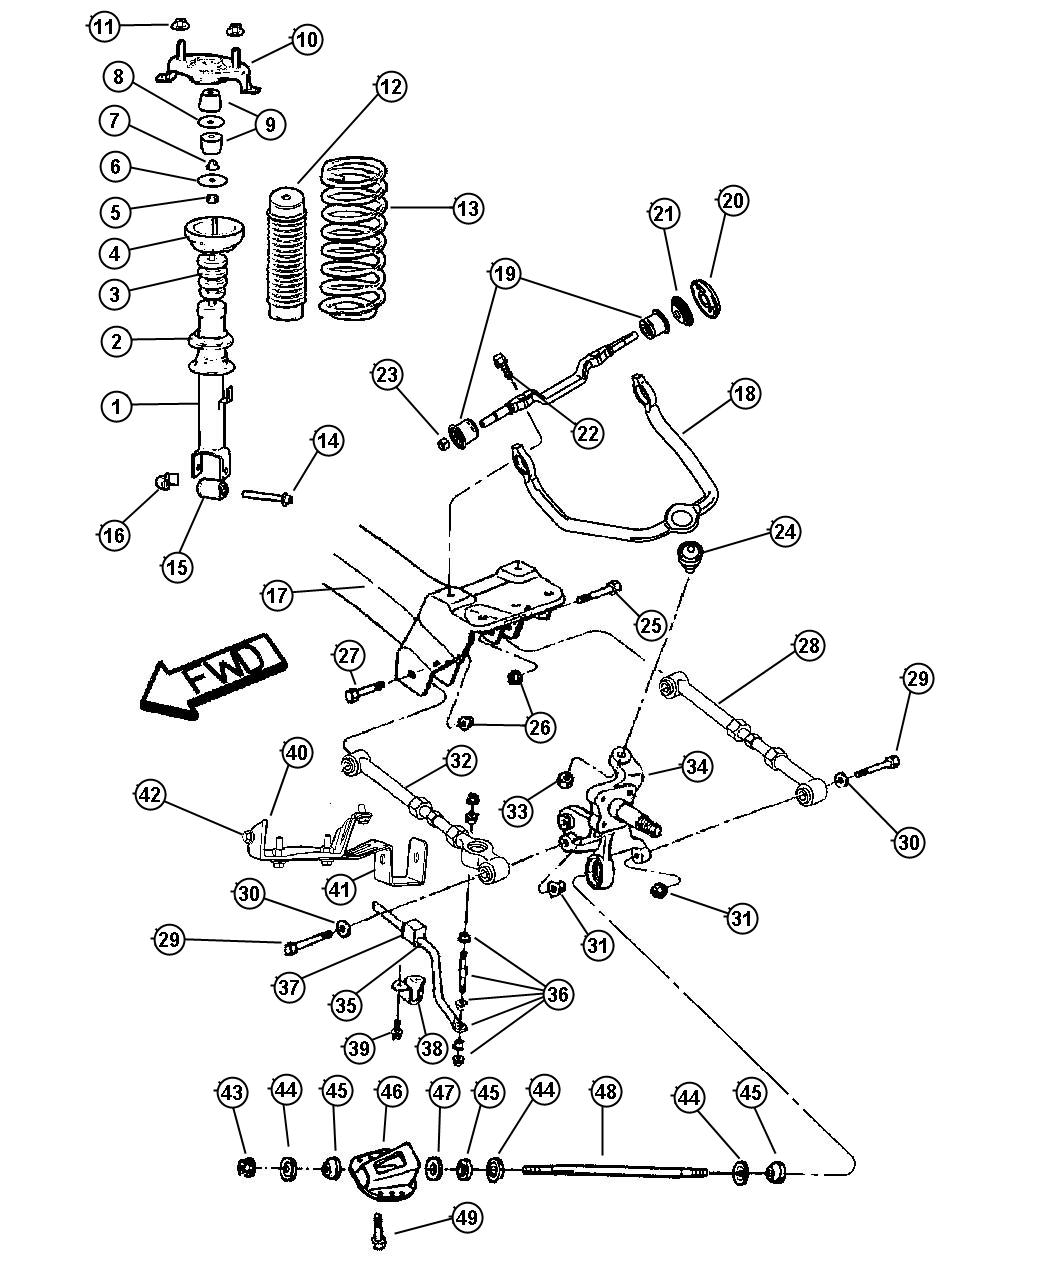 Dodge Neon Parts Diagram Rear Suspension Dodge Auto